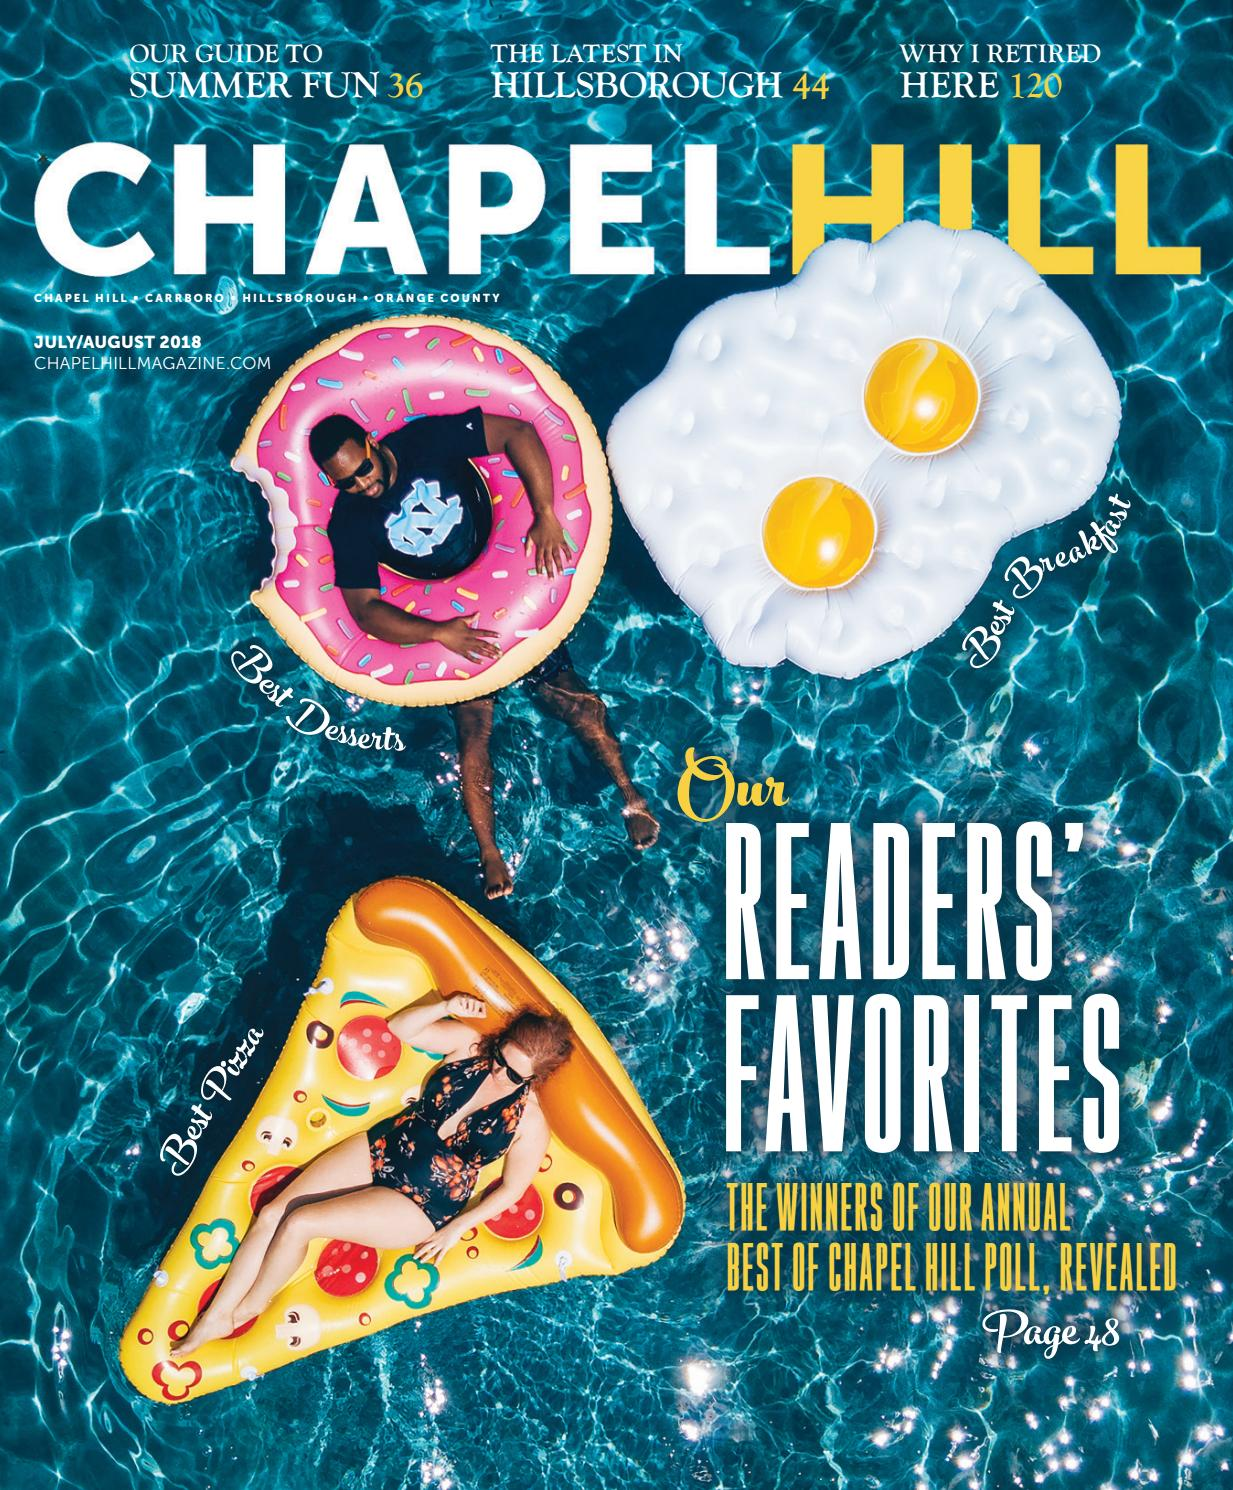 cf59a24def9 Chapel Hill Magazine July August 2018 by Shannon Media - issuu